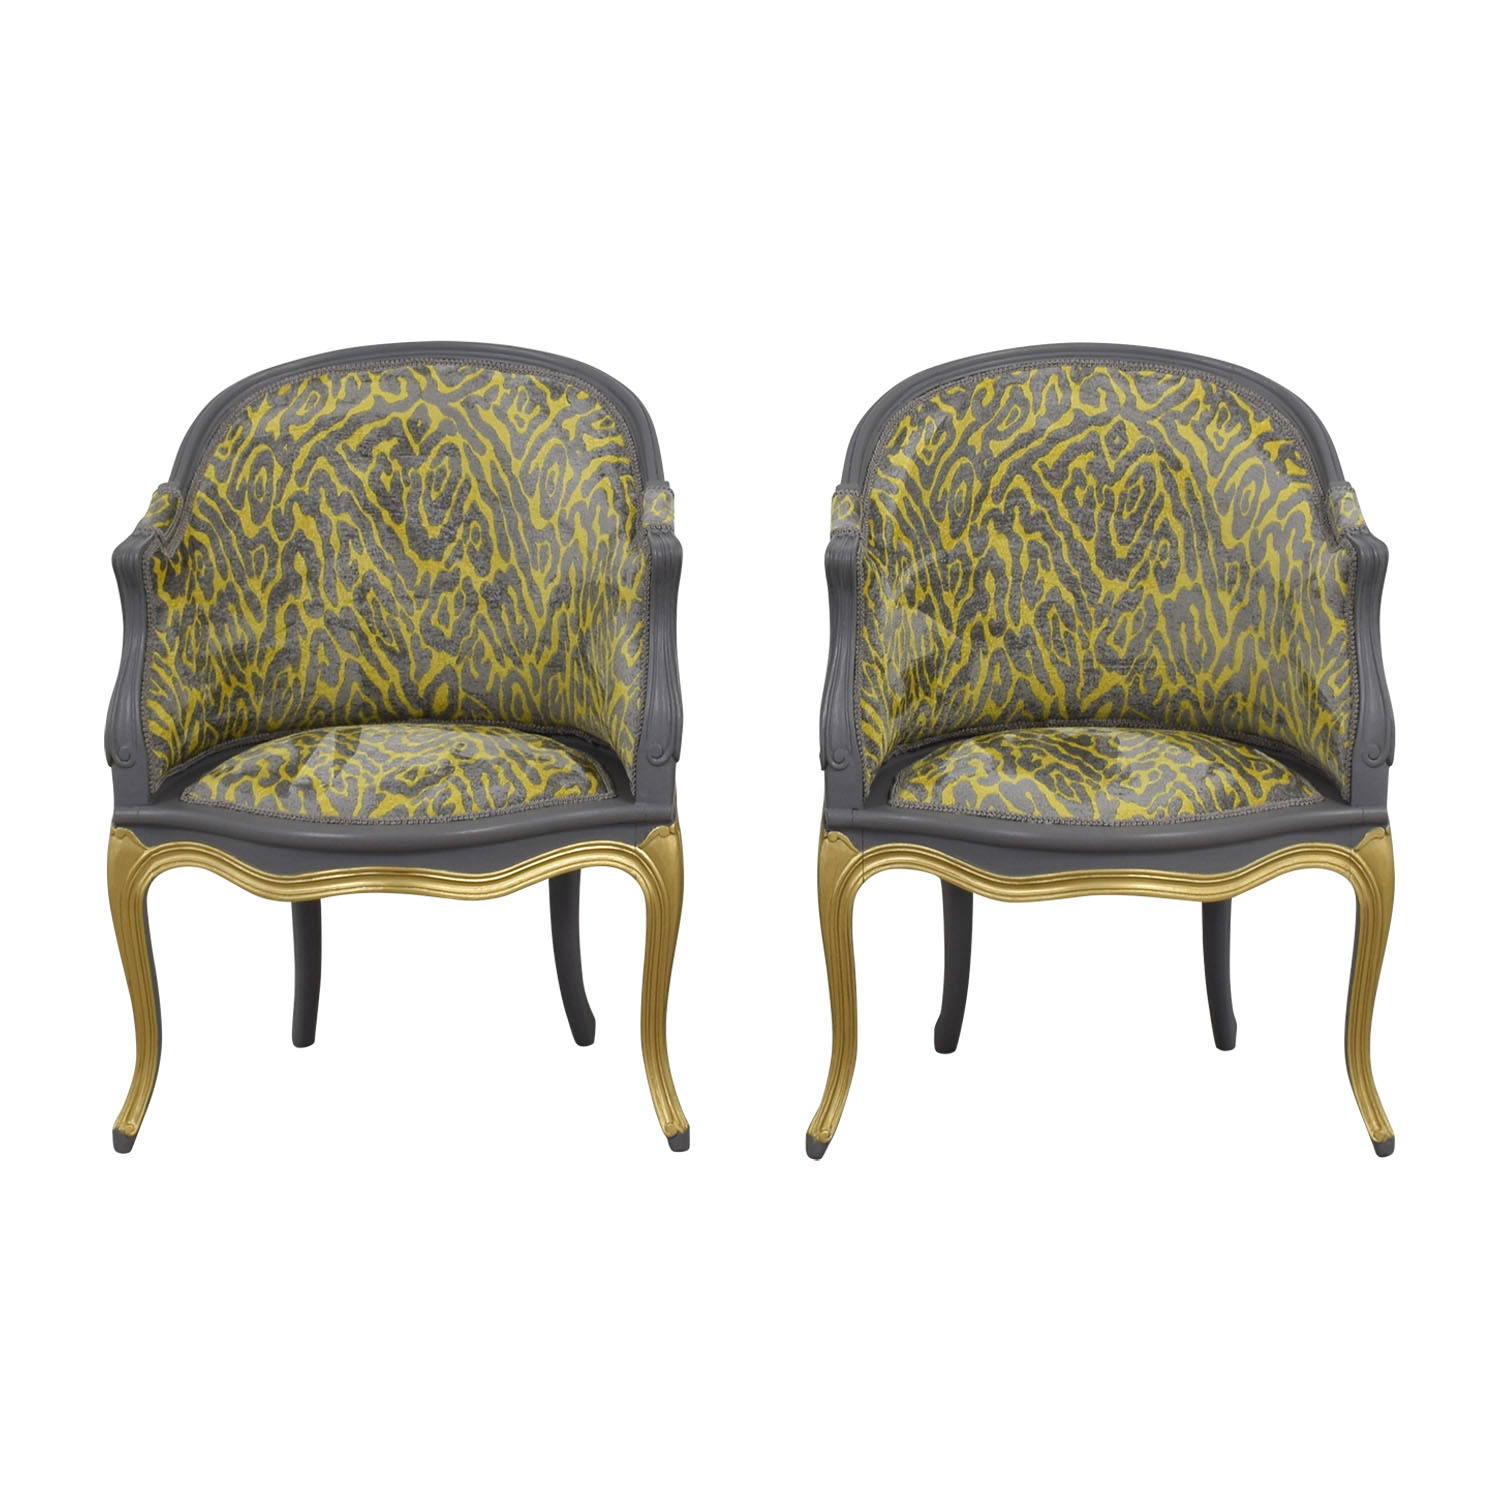 90% OFF - Country French Grey and Yellow Accent Chairs ...